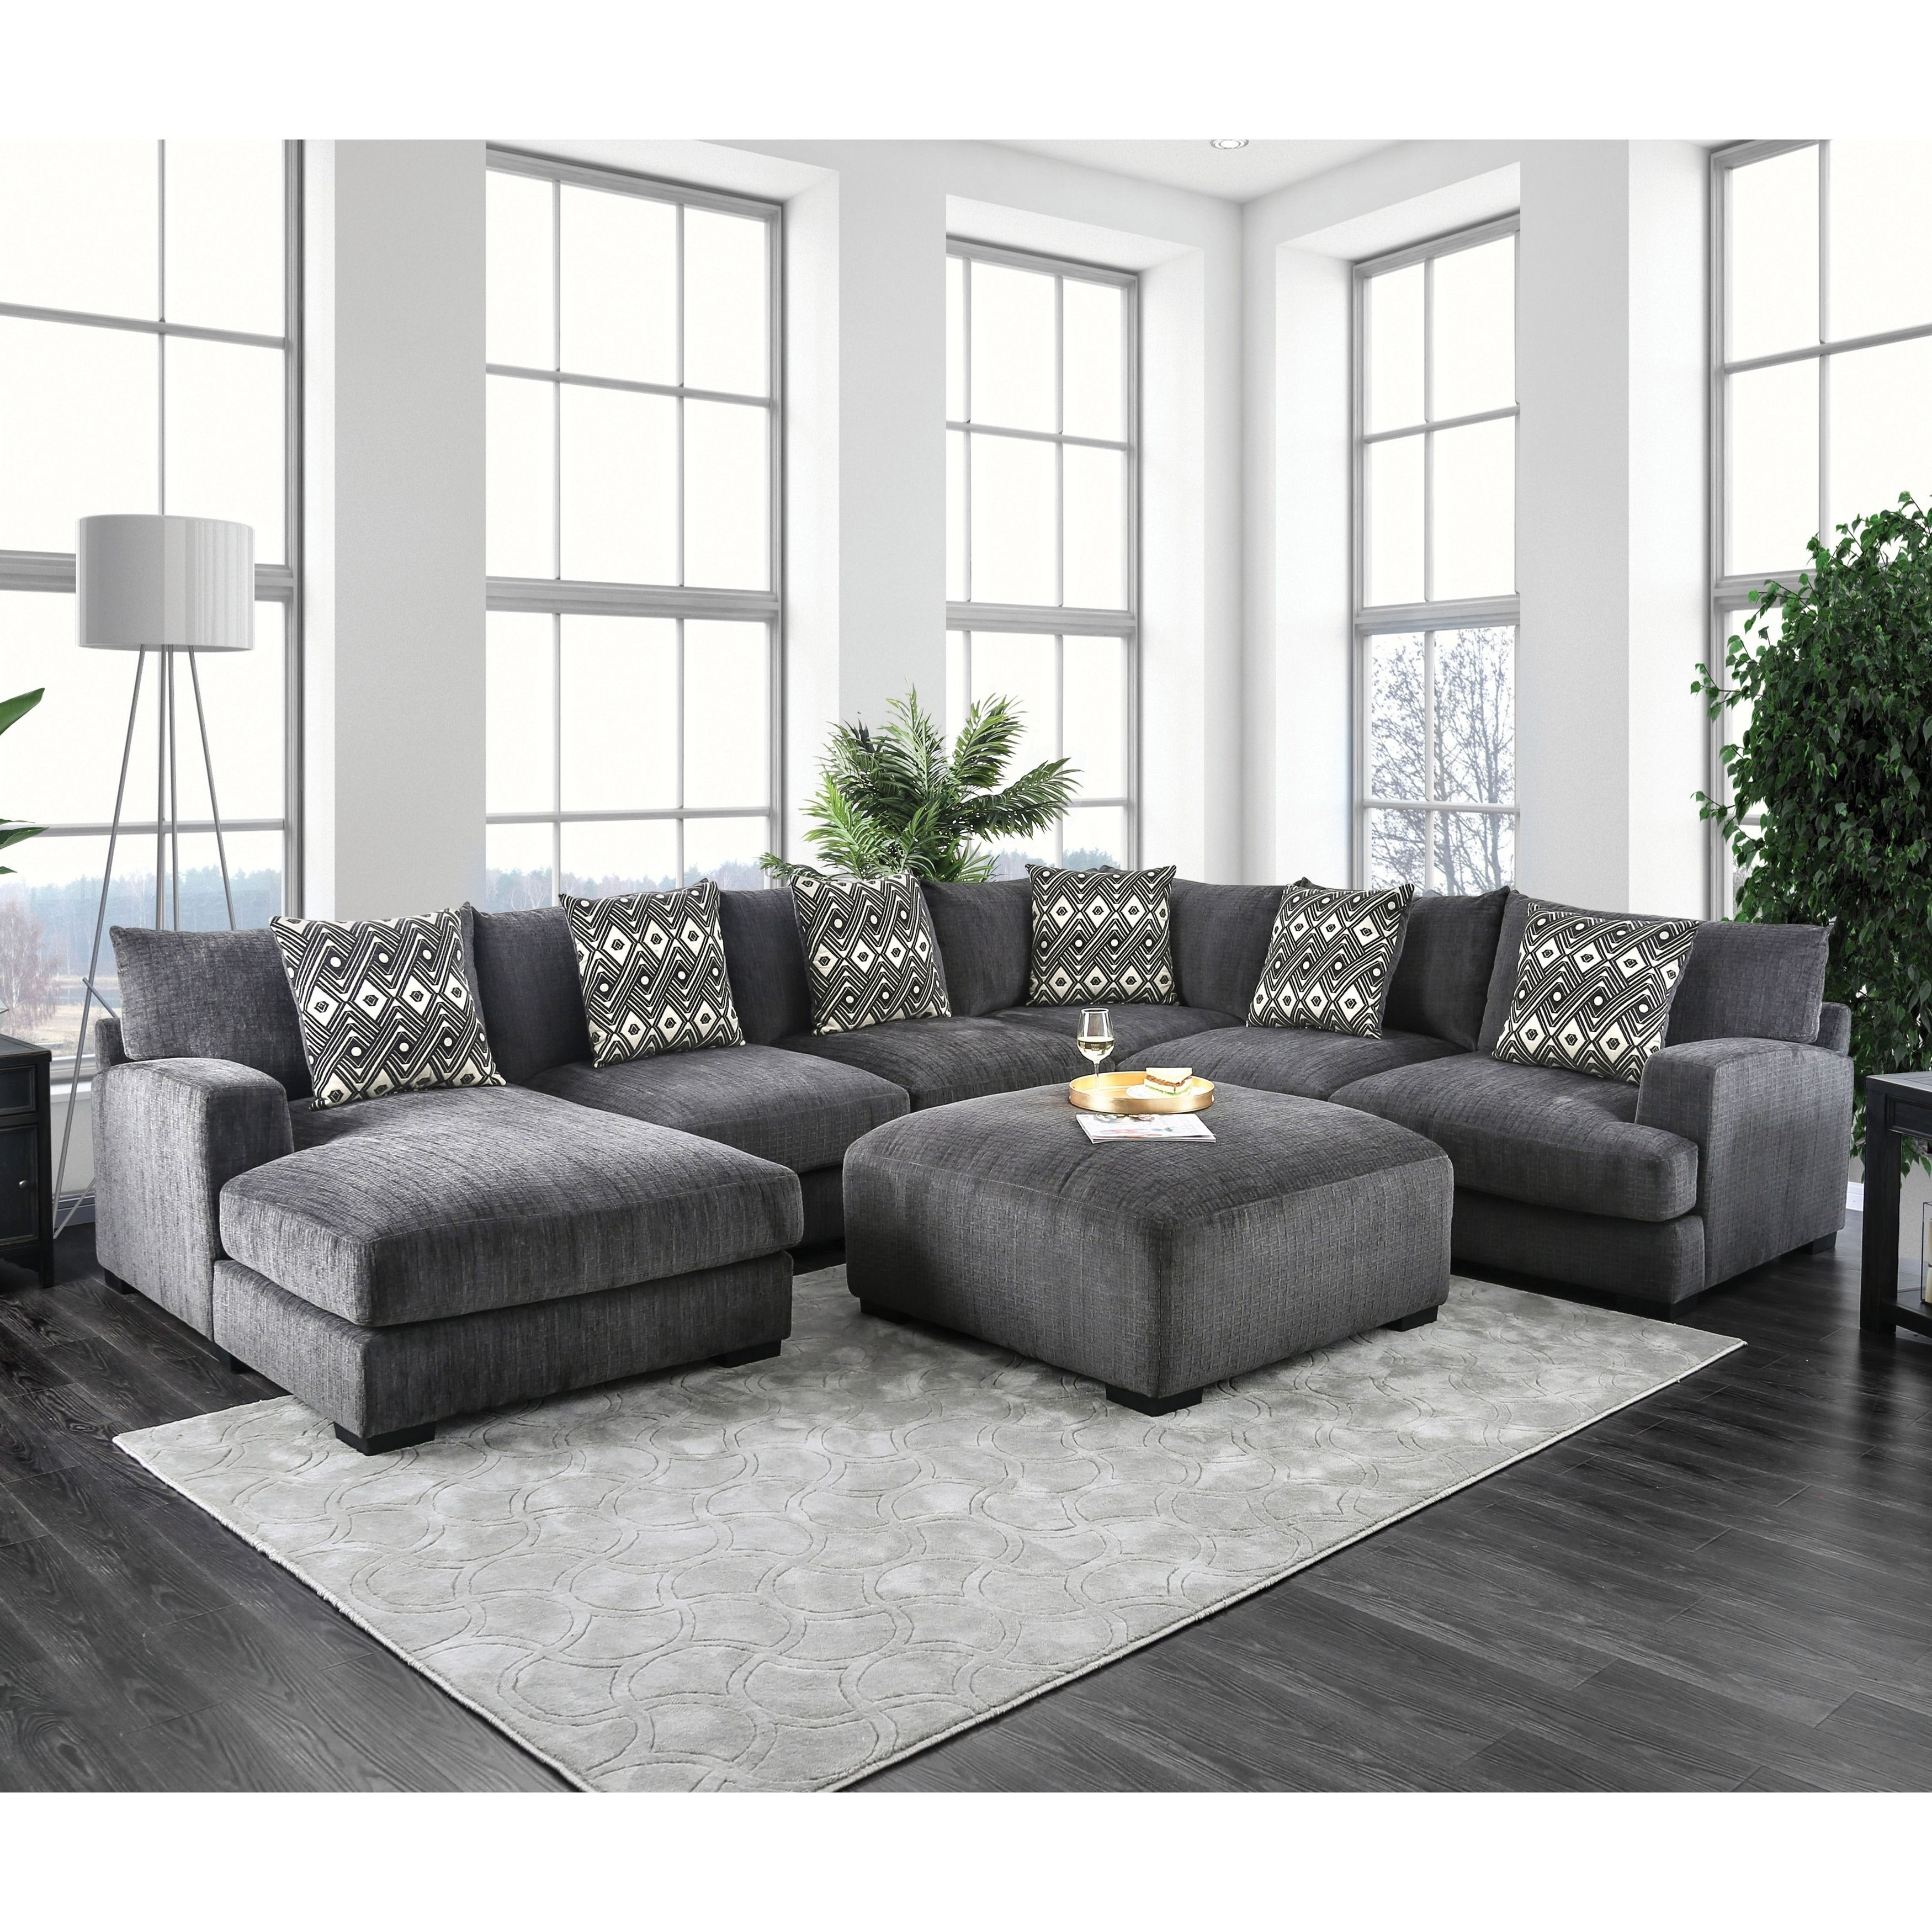 Amazing Cleo Modular Grey Microfiber Chenille Sectional By Foa In Machost Co Dining Chair Design Ideas Machostcouk